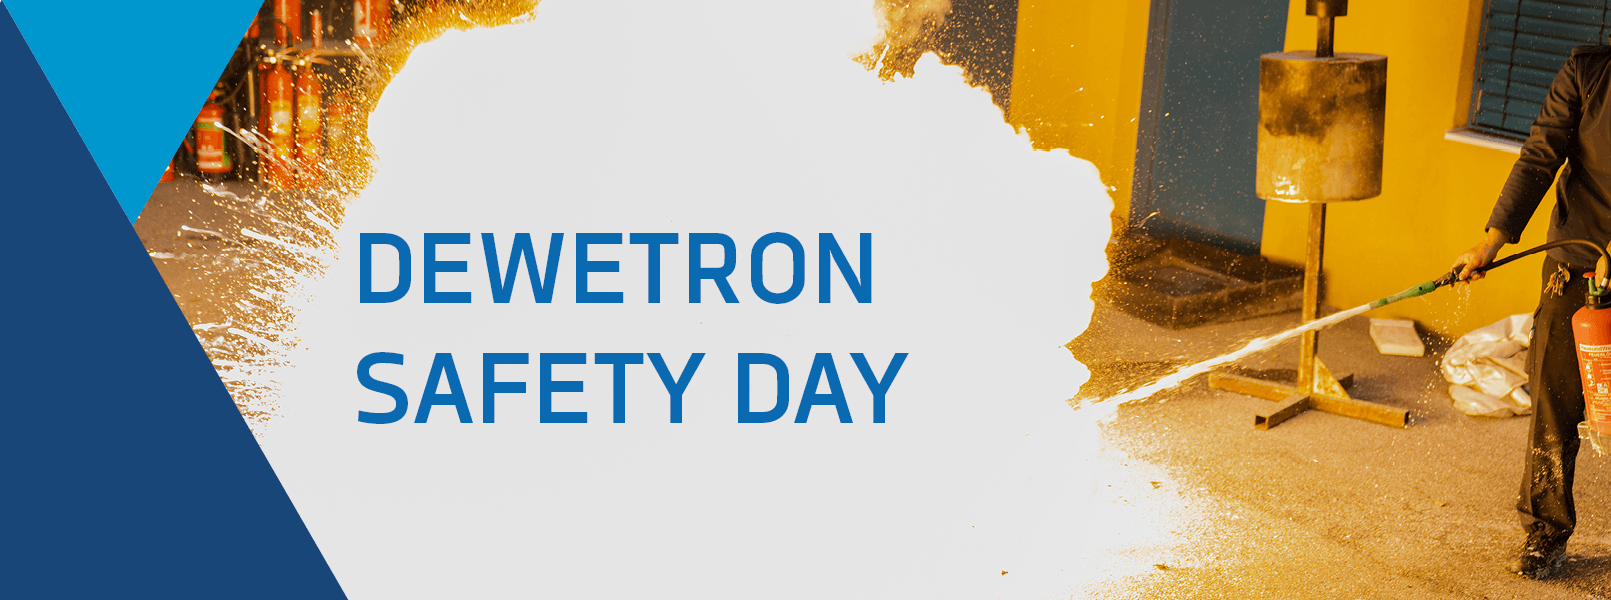 firefighters-dewetron-safety-day